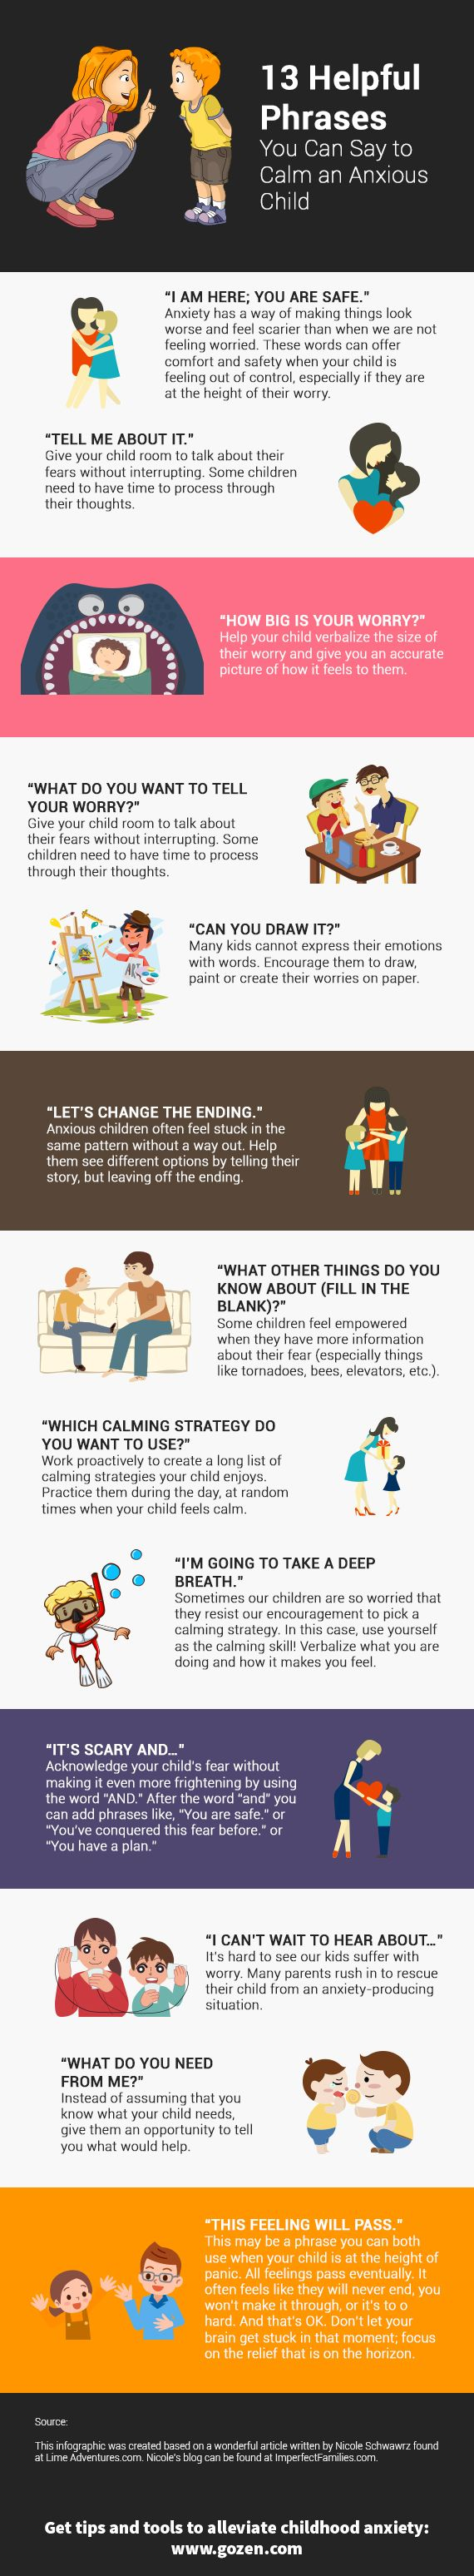 images How to Deal With Sensory Processing Disorder As a Teen